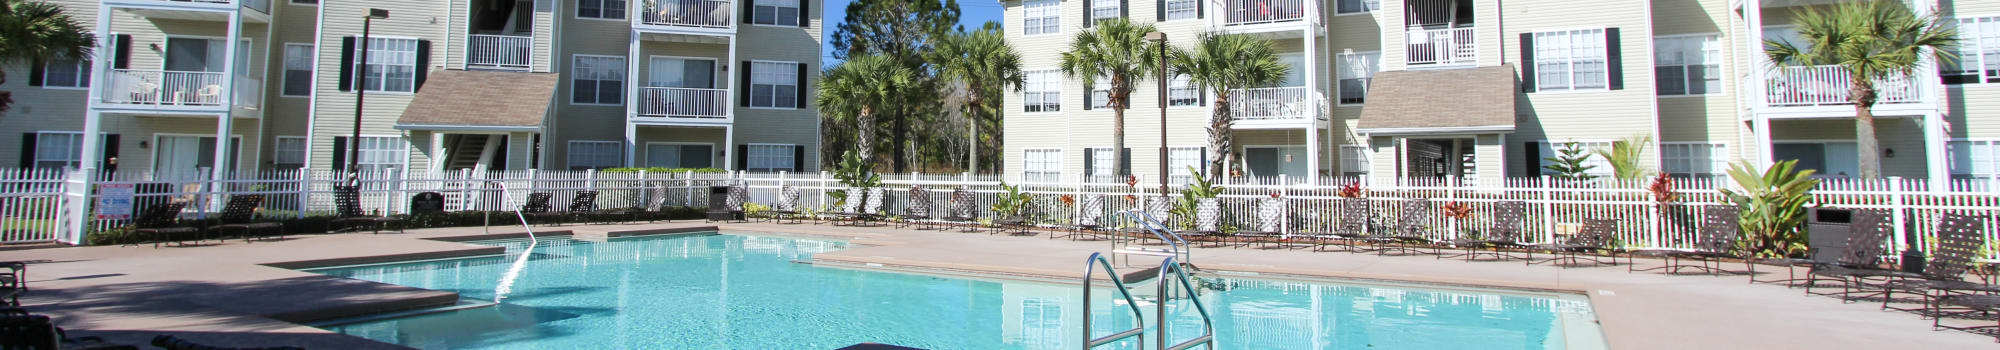 Apartments in New Port Richey offering 1, 2 & 3